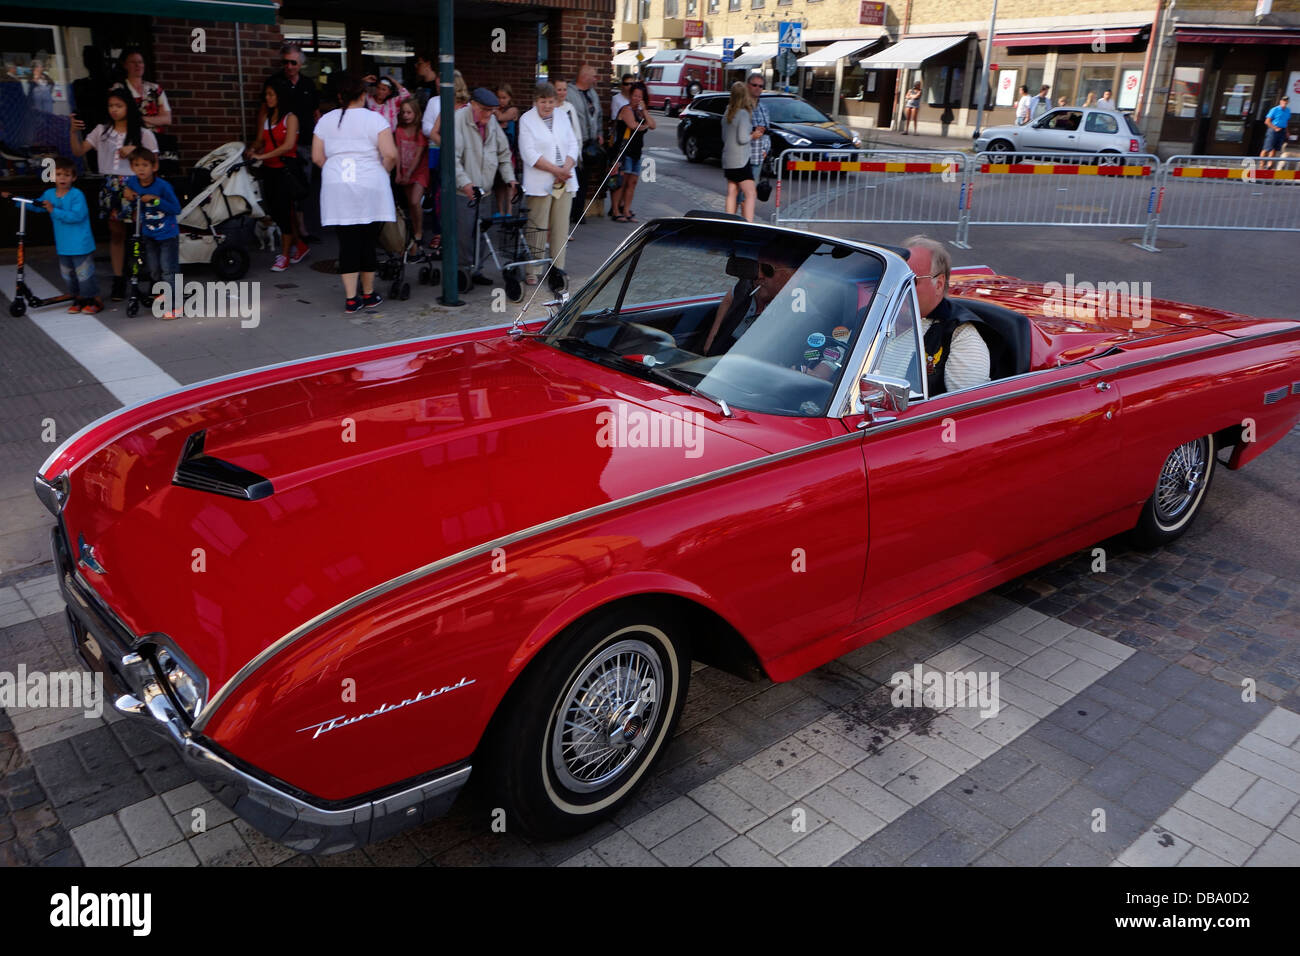 Two Elderly Men Ride In The Red (1962) Ford Thunderbird Sports Roadster  Classic Car. On The Road In Varberg Town, Sweden